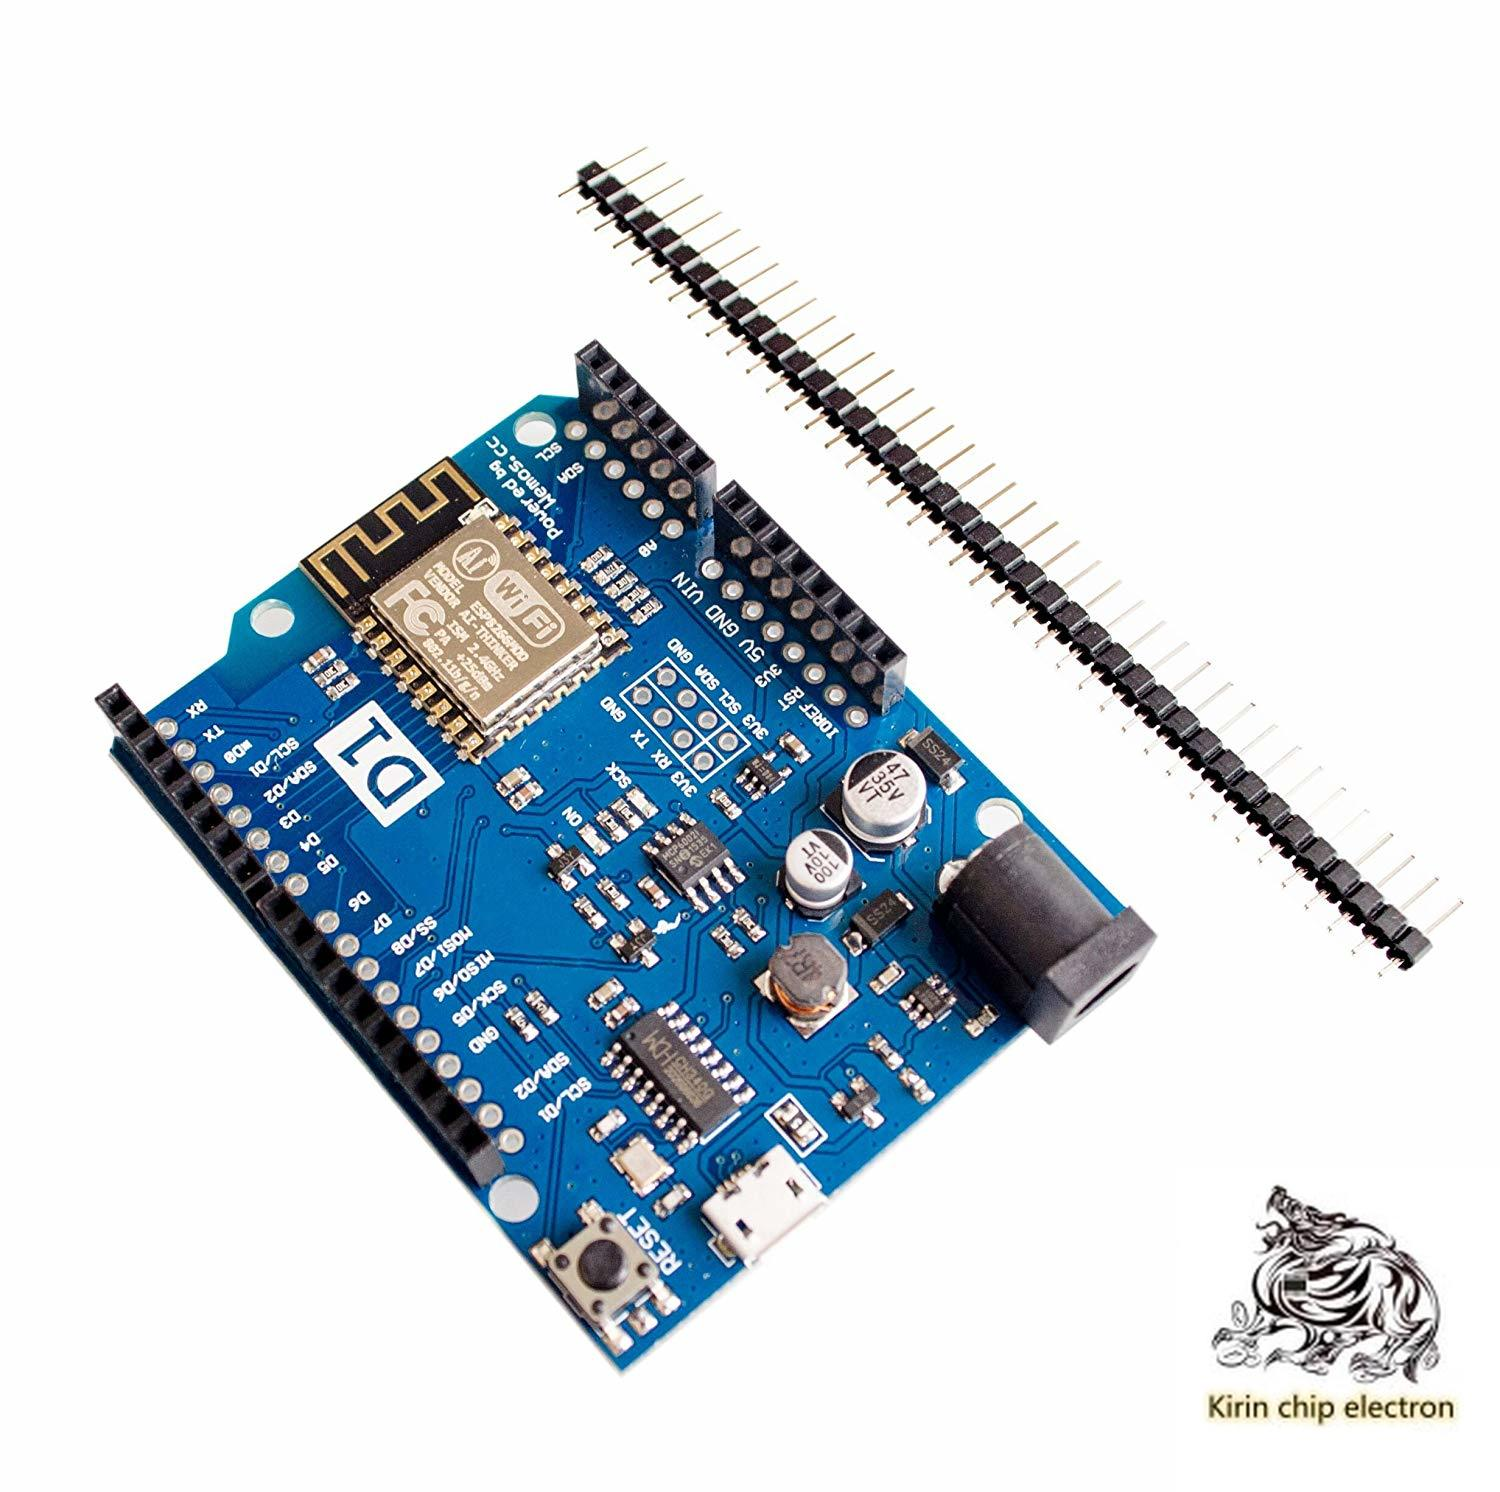 2 PCS/LOT Upgrade Version WeMos D1R2 WiFi UNO Development Board Based On ESP8266